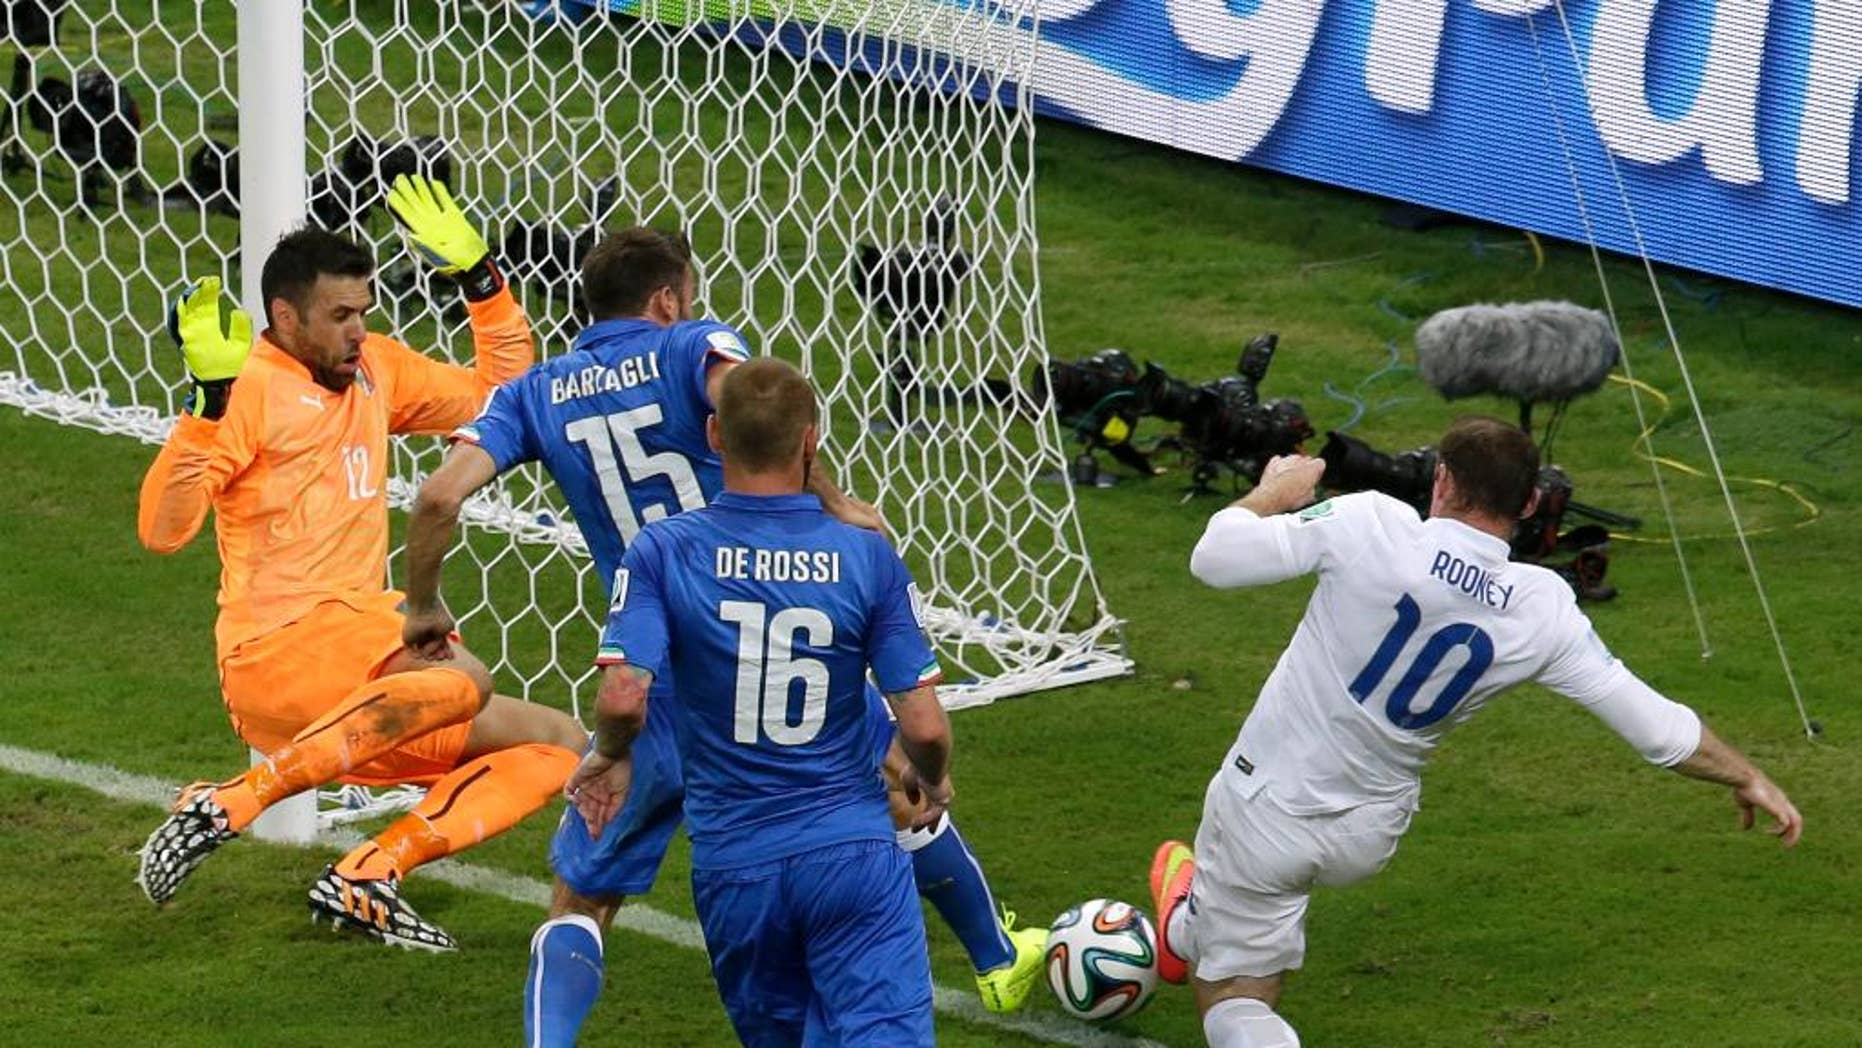 England's Wayne Rooney, right, fails to score during the group D World Cup soccer match between England and Italy at the Arena da Amazonia in Manaus, Brazil, Saturday, June 14, 2014.  (AP Photo/Themba Hadebe)